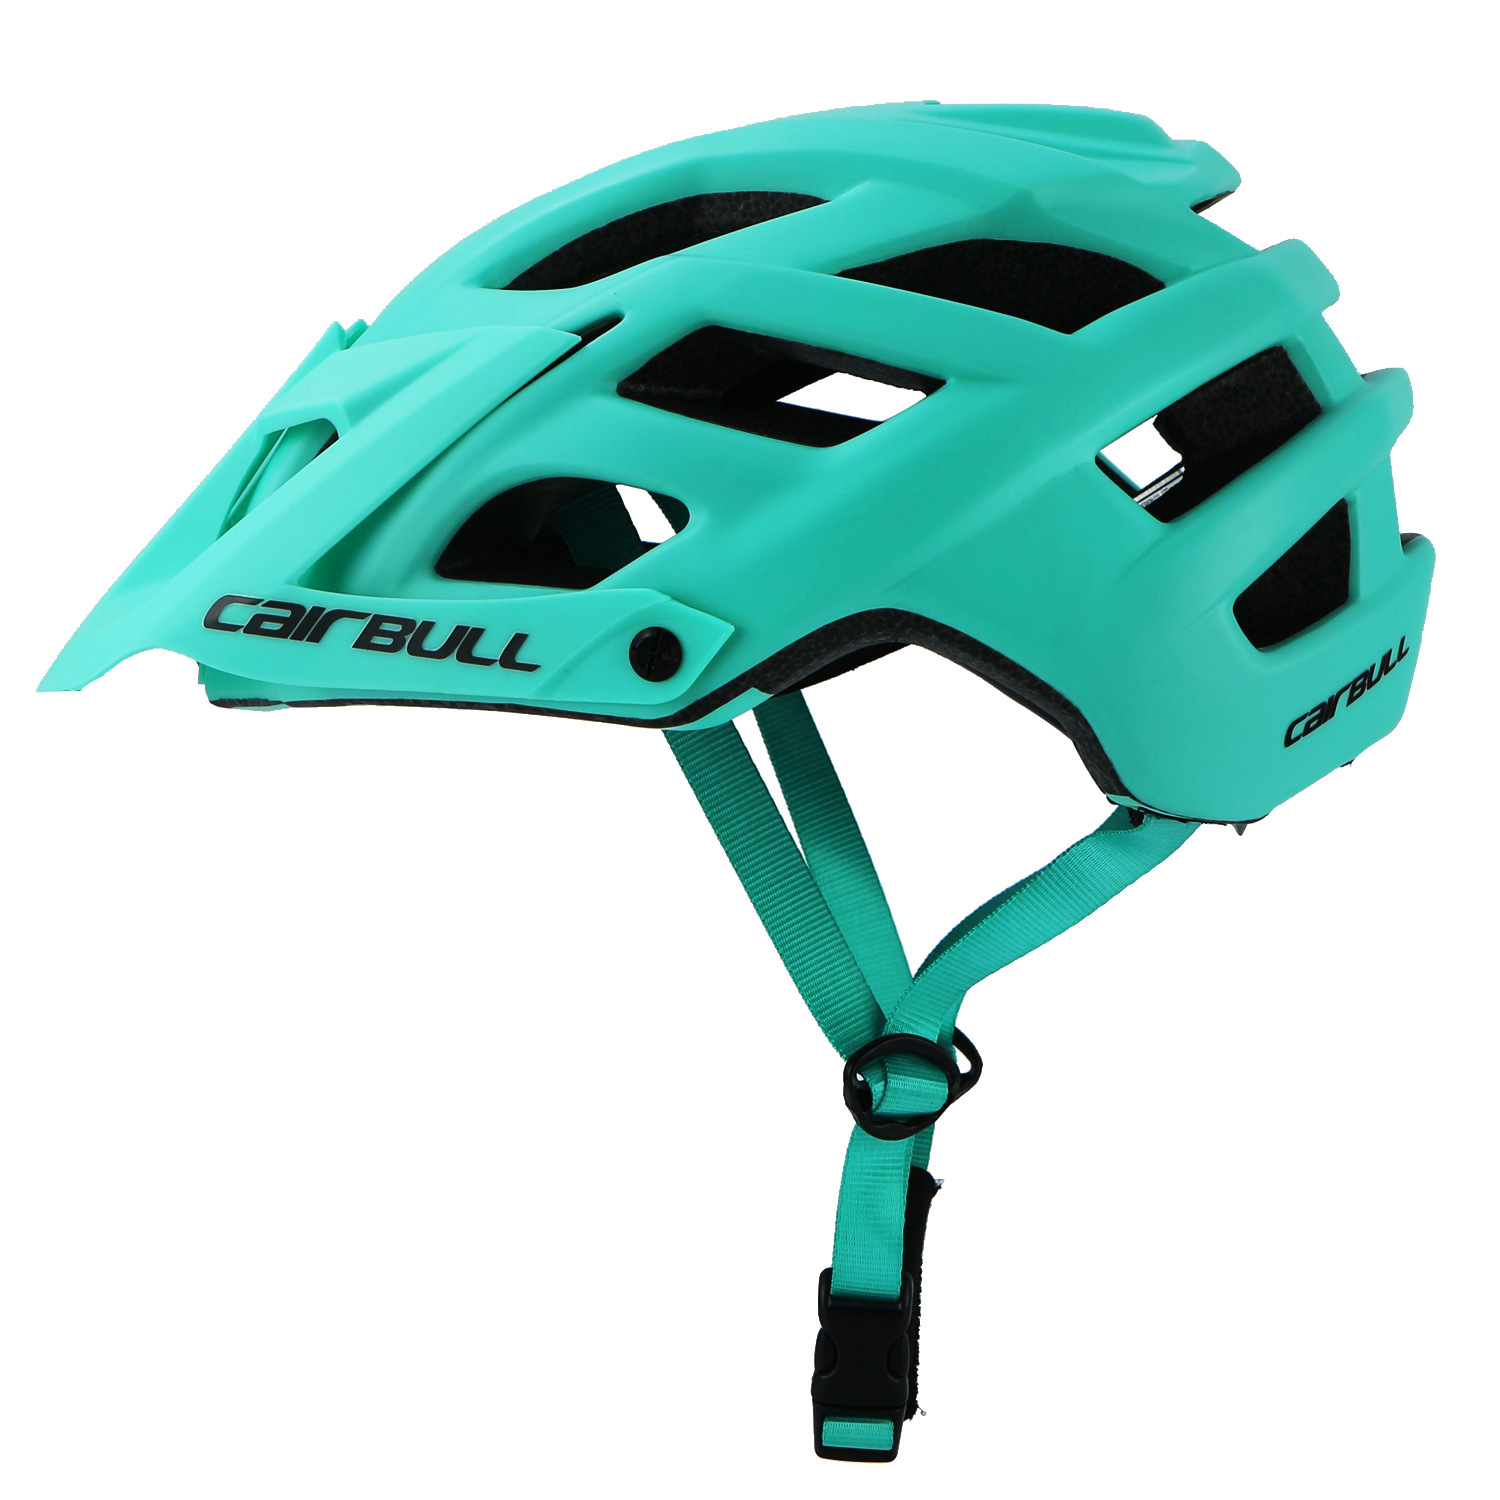 Cycling Helmet Bicycle Helmets In mold Helmet Road Mountains For MTB Bike Safety